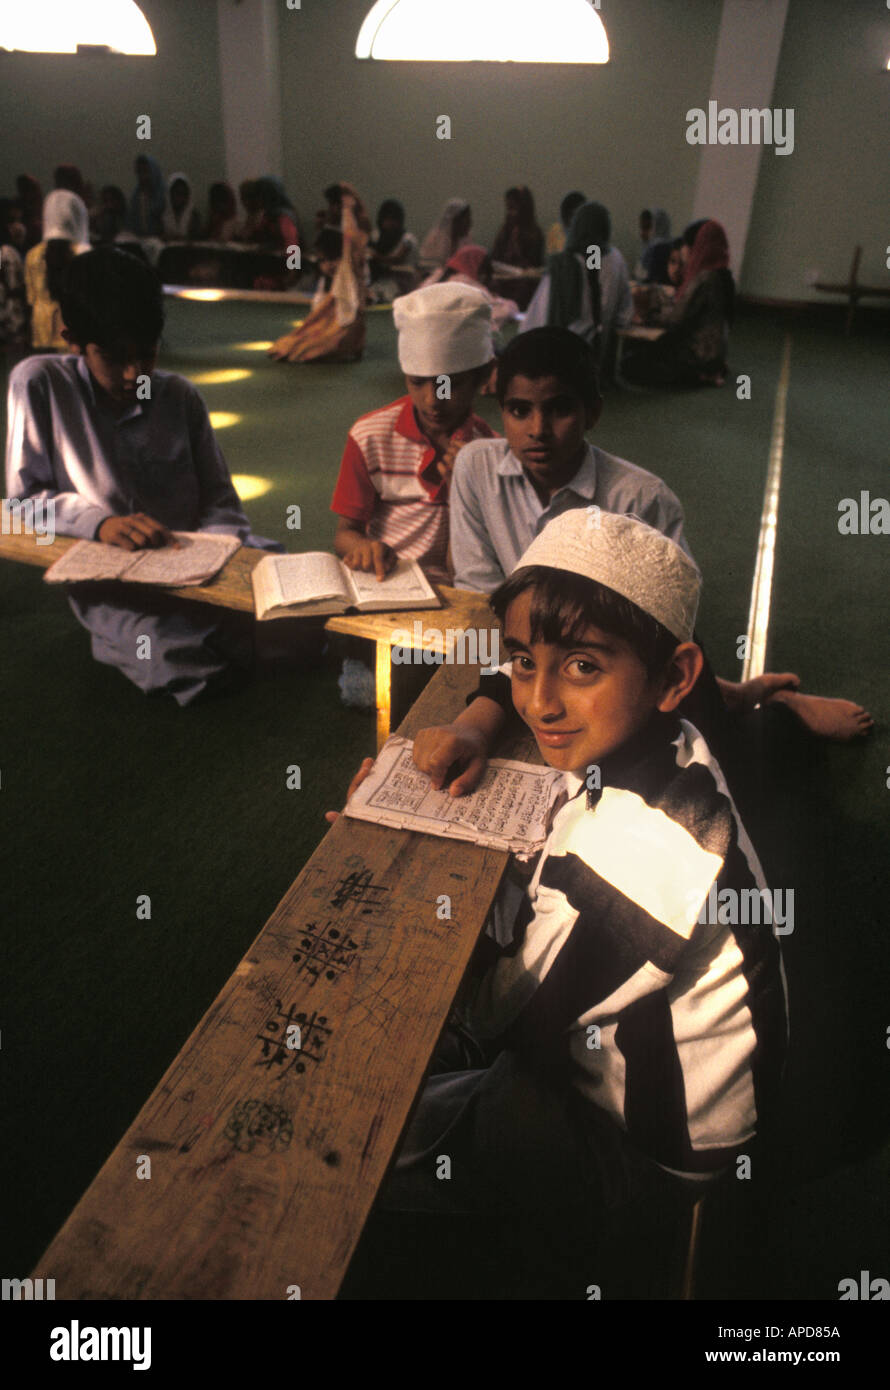 After School Classes in High Wycombe Mosque - Stock Image